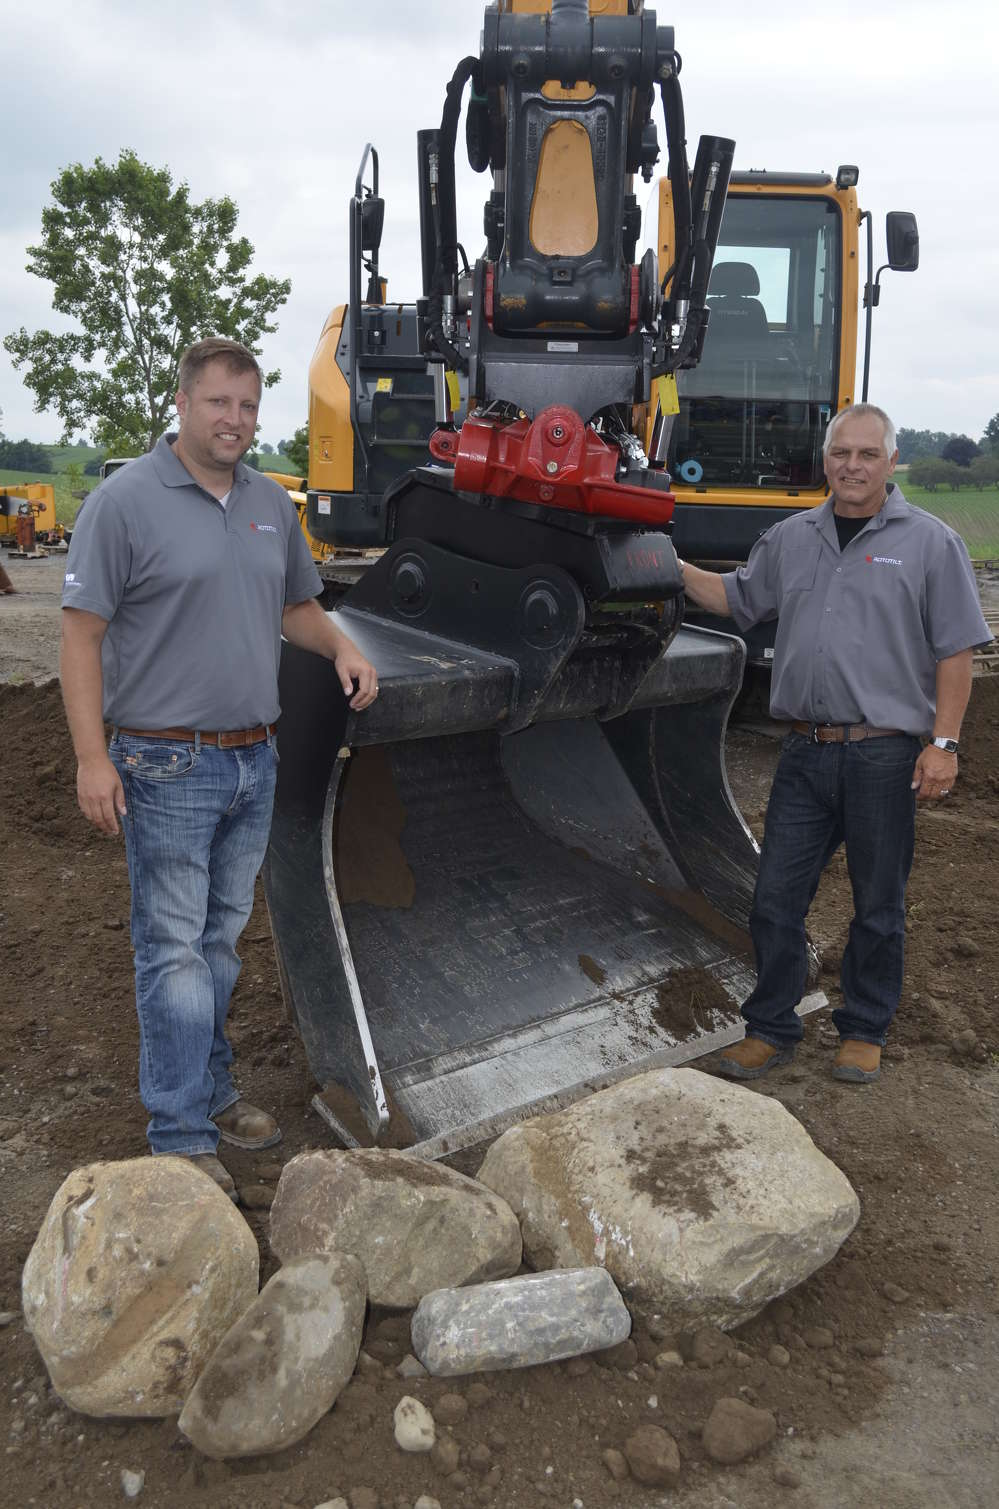 Phil Lucoe (L) and Stephen Nagy of Rototilt were on hand to demonstrate the extreme flexibility of the Rototilt coupling system.